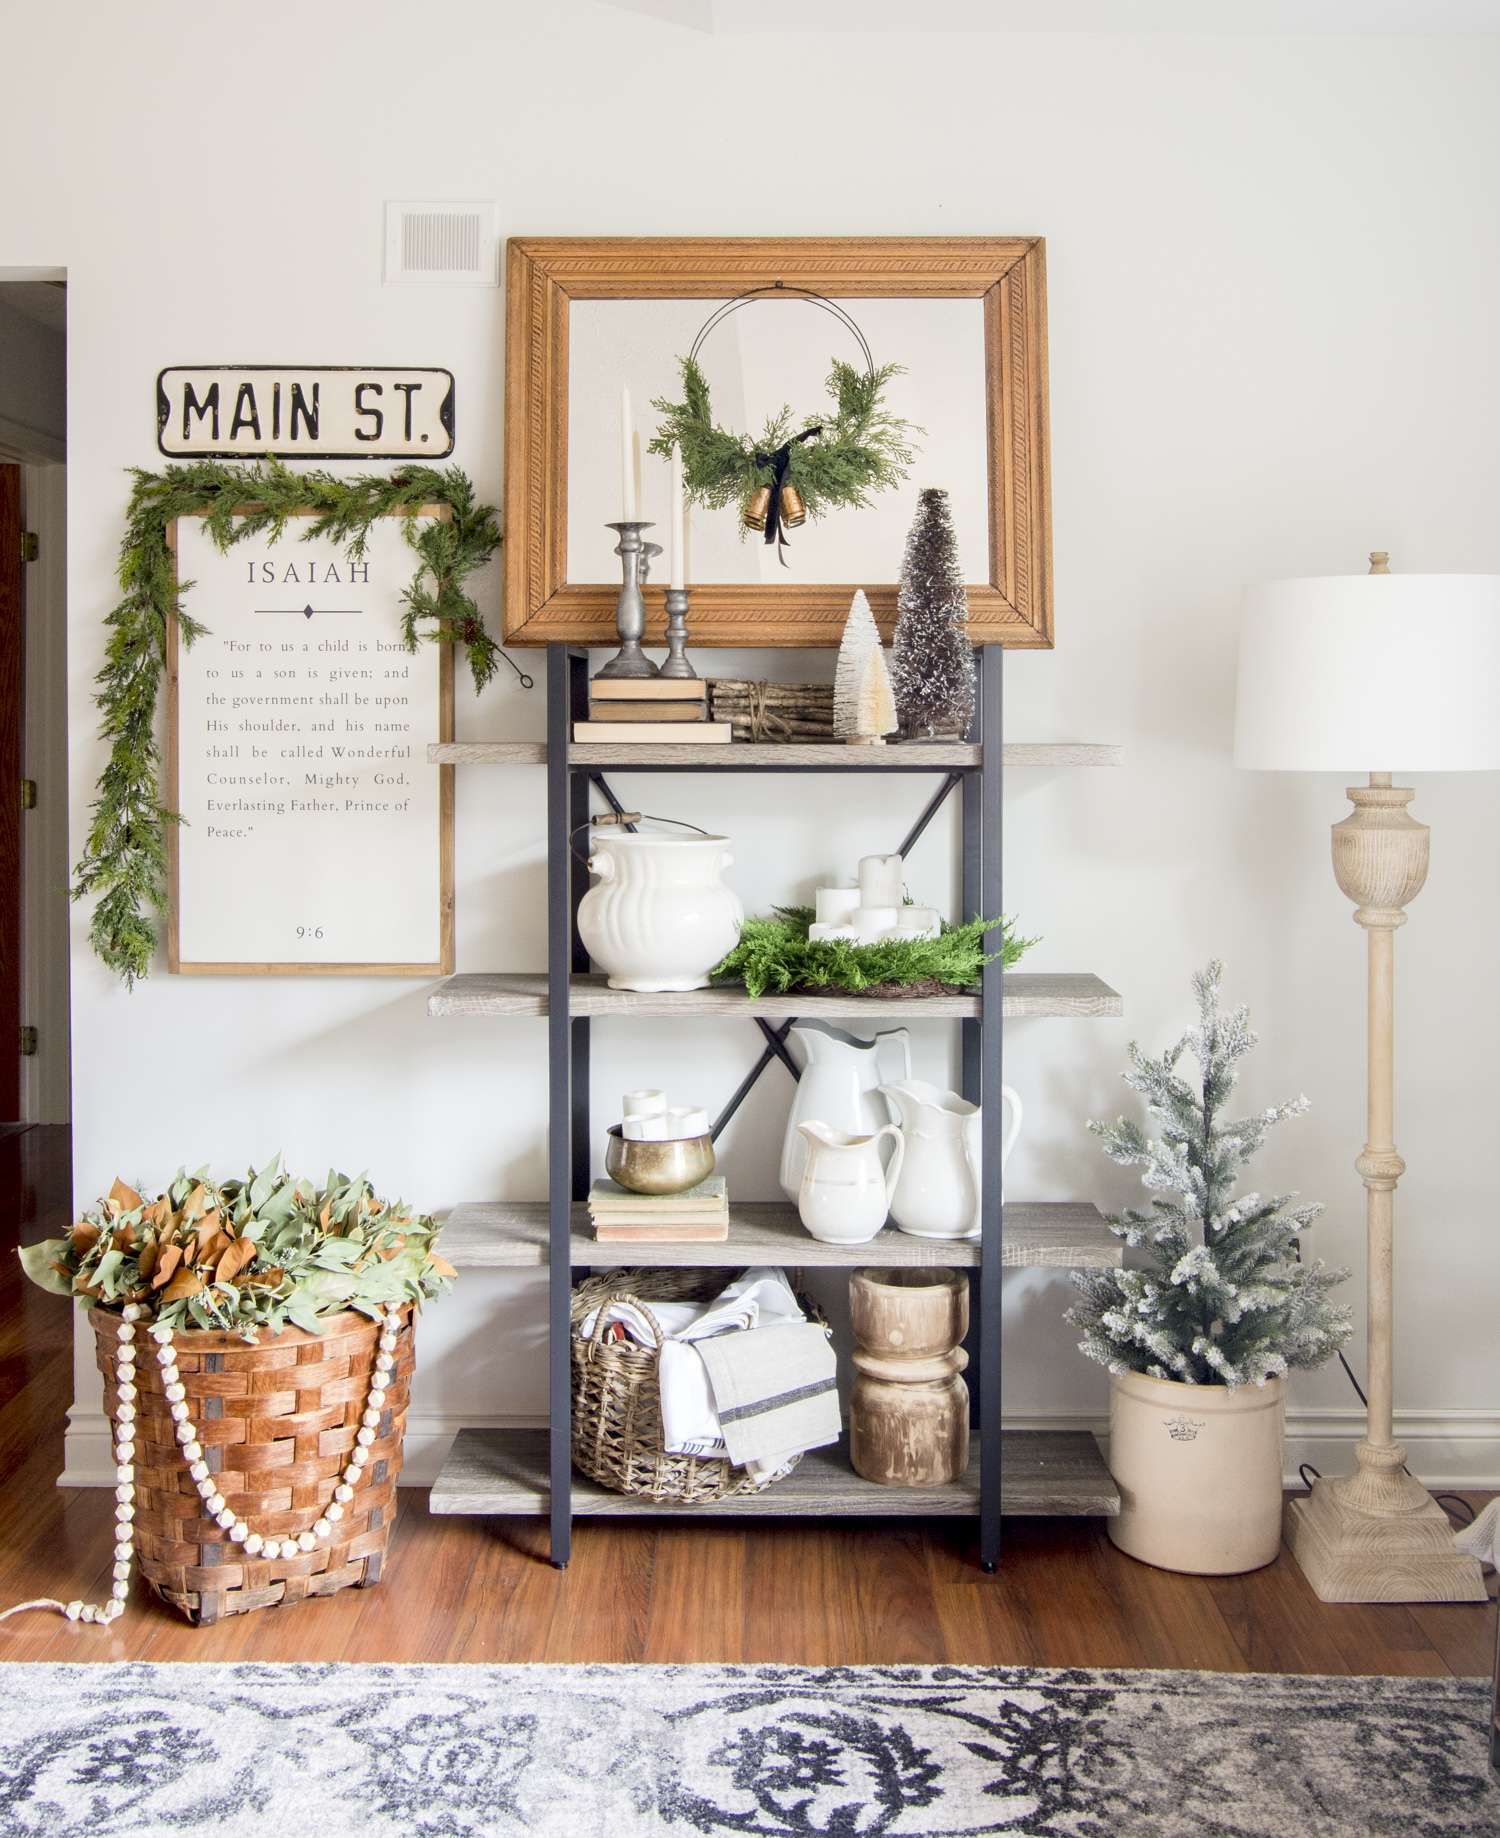 Modern farmhouse open shelving styled for Christmas